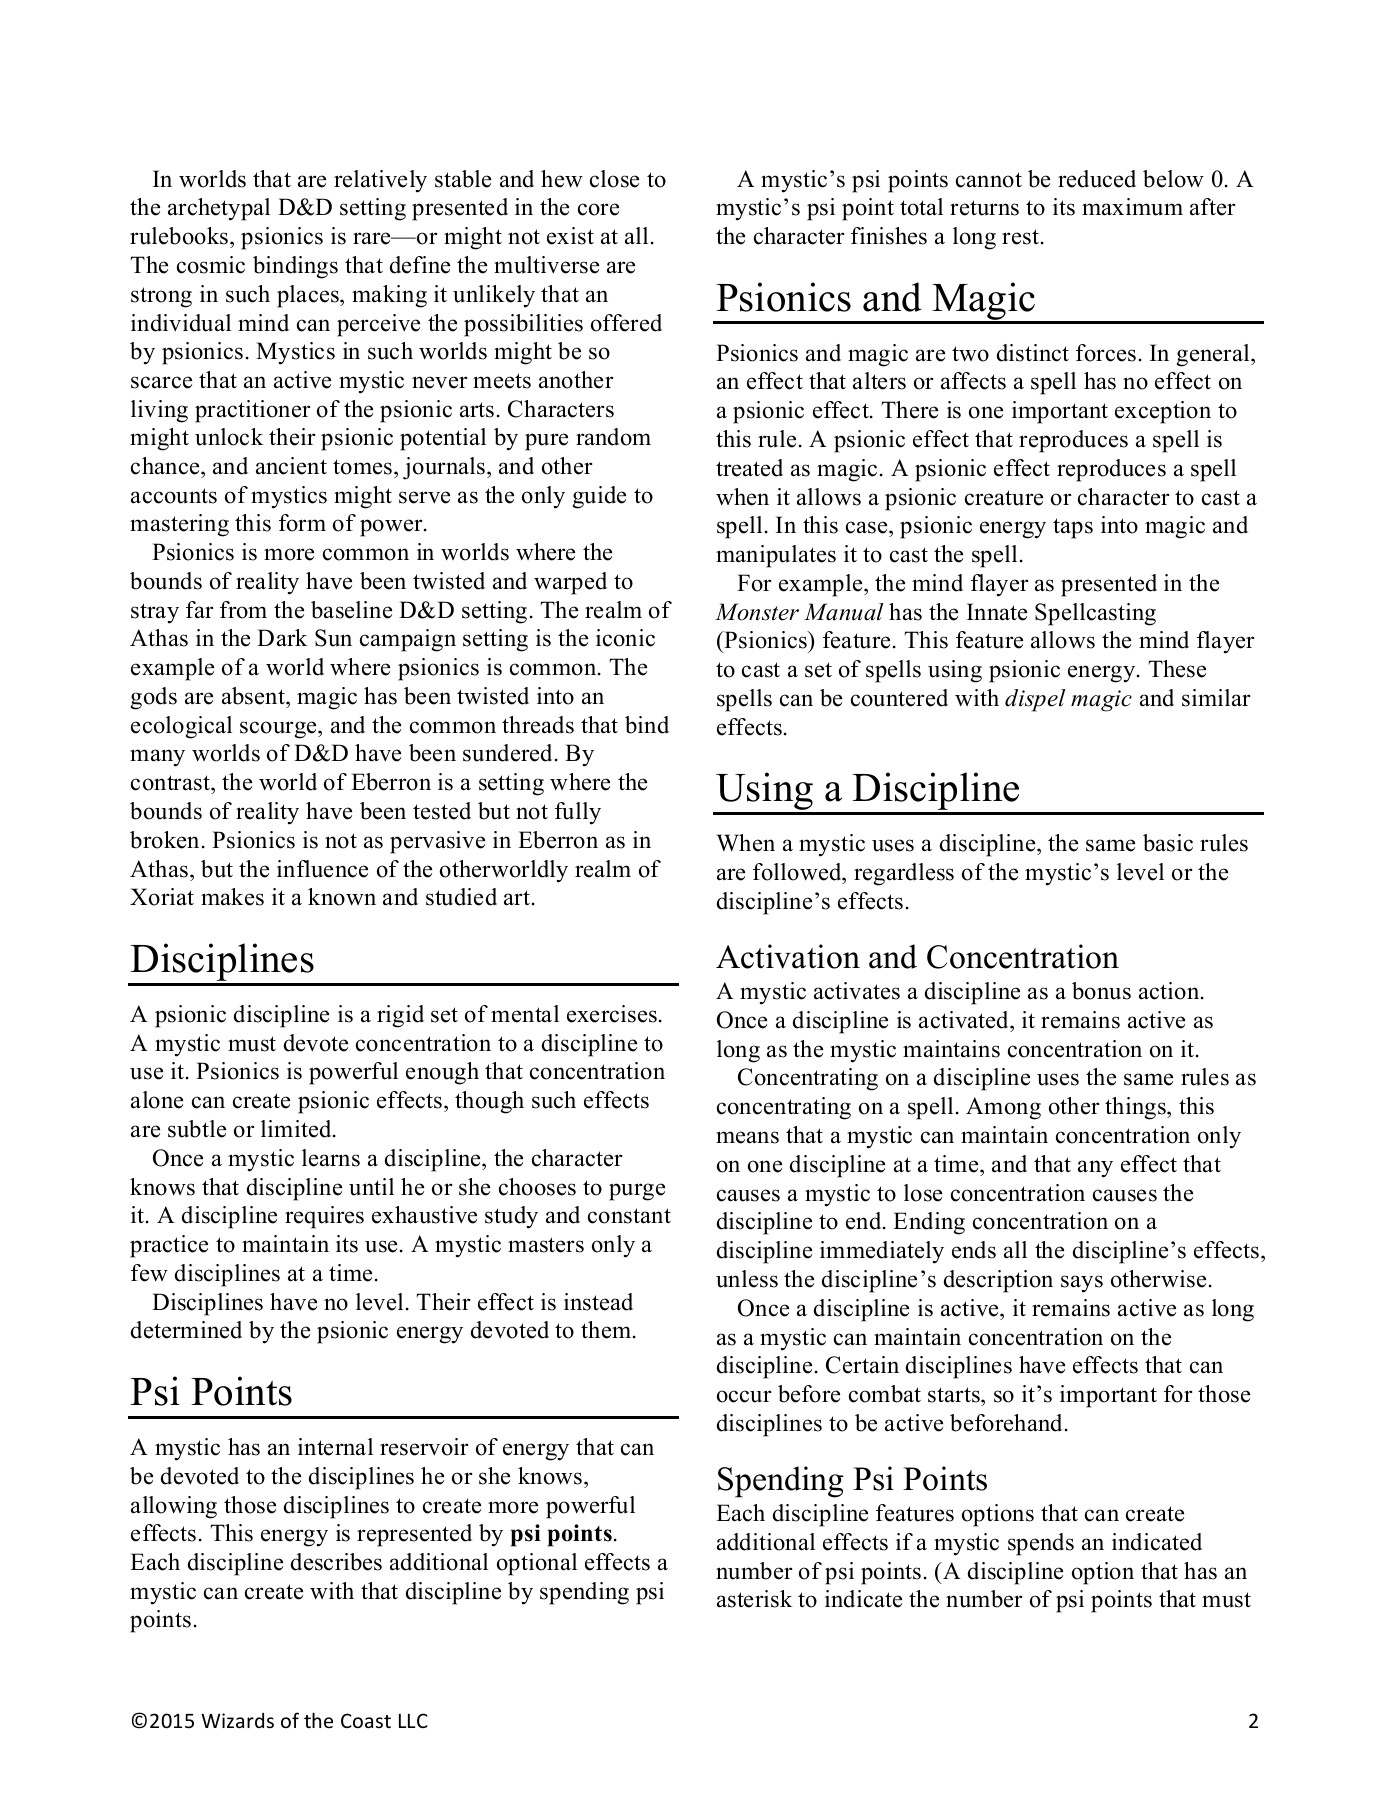 Psionics and the Mystic - Dungeons & Dragons Pages 1 - 7